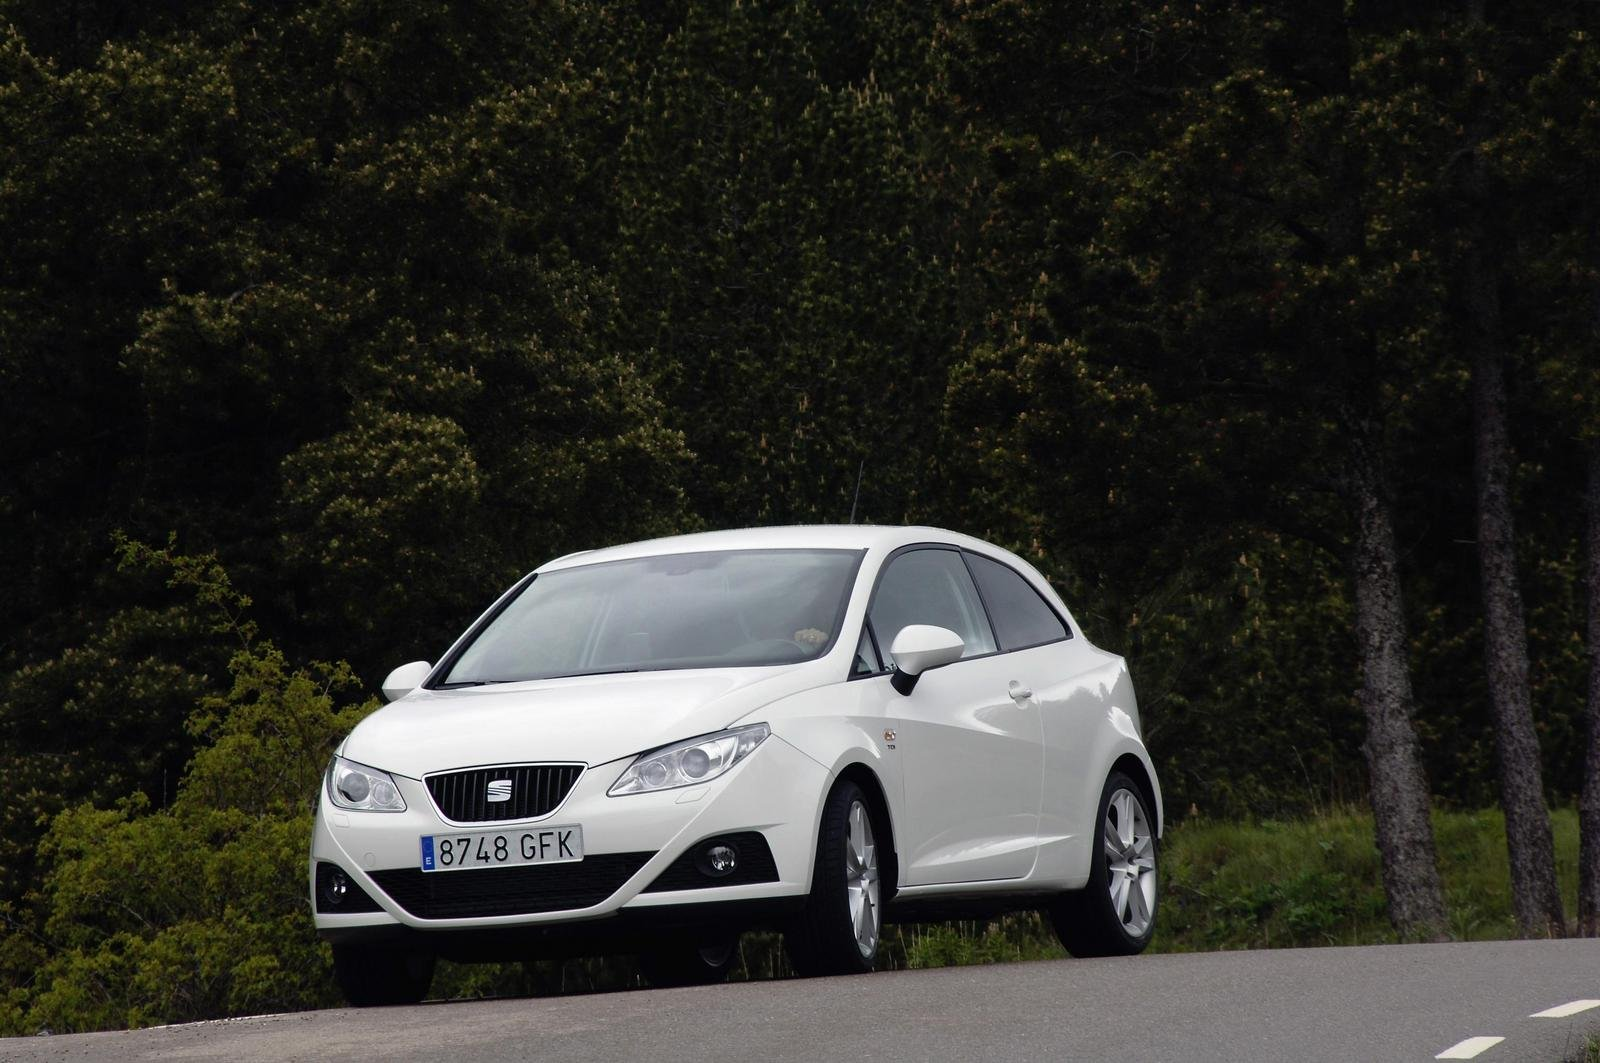 2009 seat ibiza sportcoupe picture 253777 car review top speed. Black Bedroom Furniture Sets. Home Design Ideas